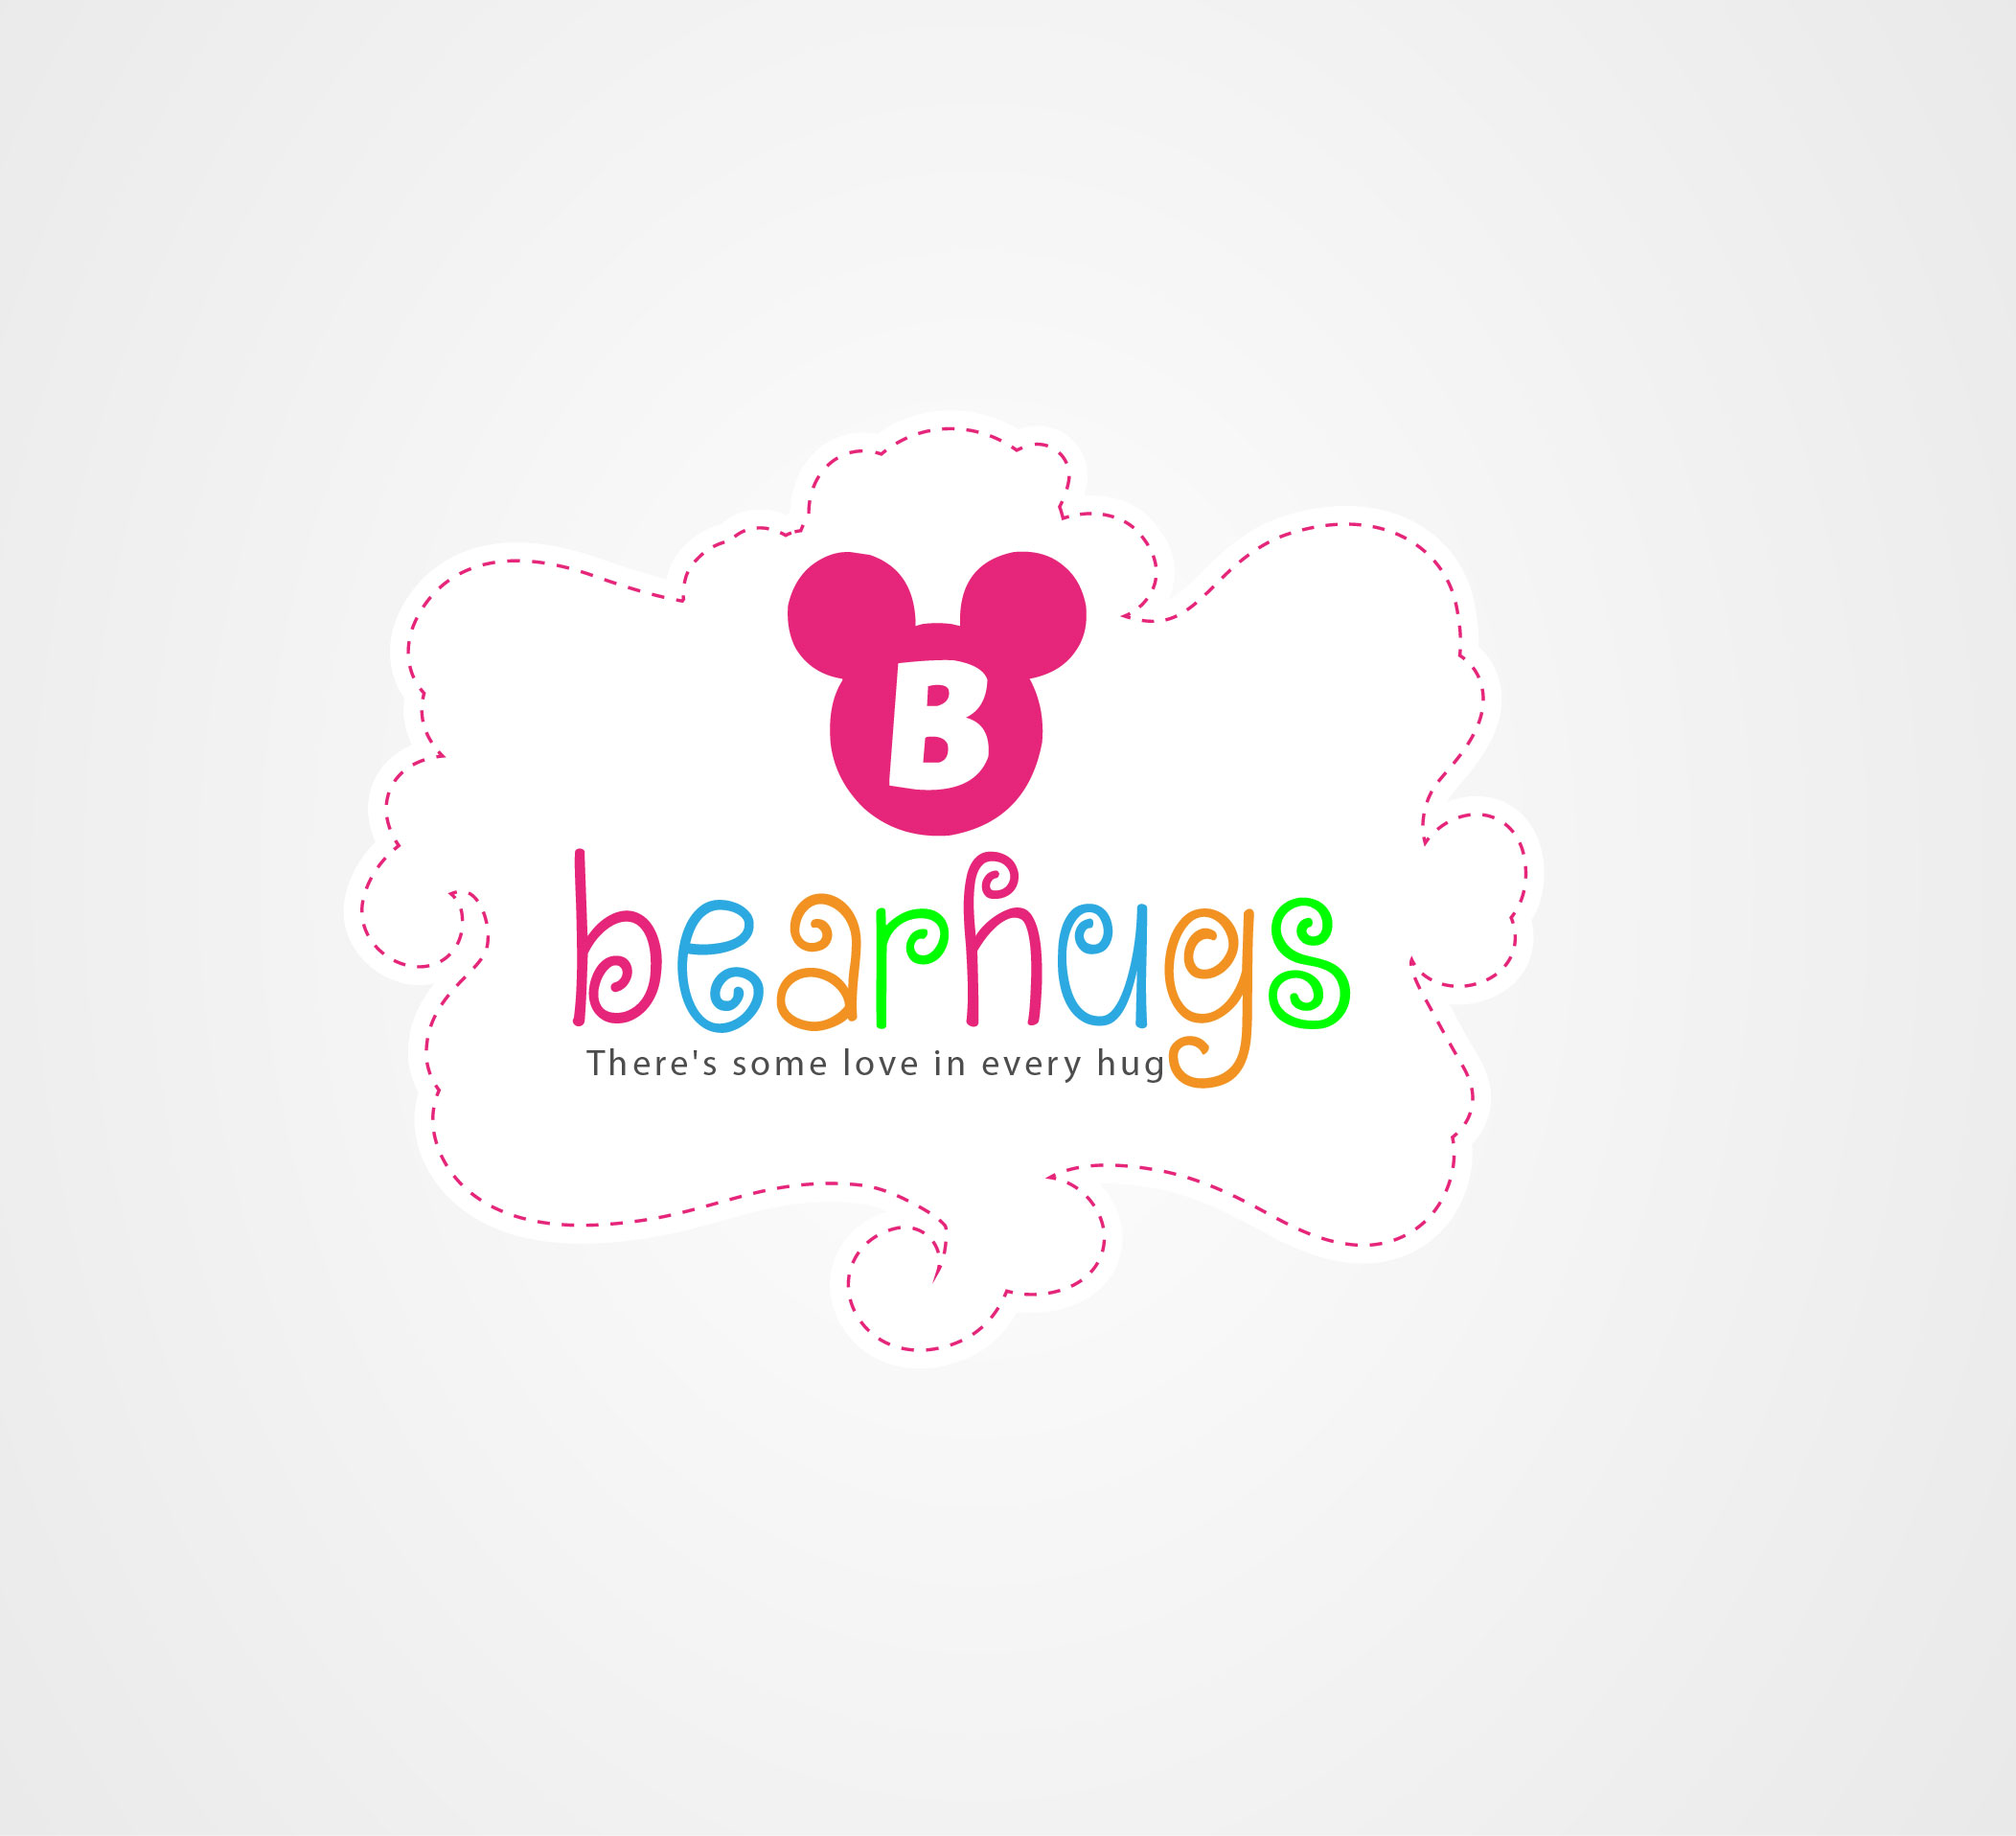 Logo Design by Darina Dimitrova - Entry No. 57 in the Logo Design Contest Inspiring Logo Design for BearHugs.